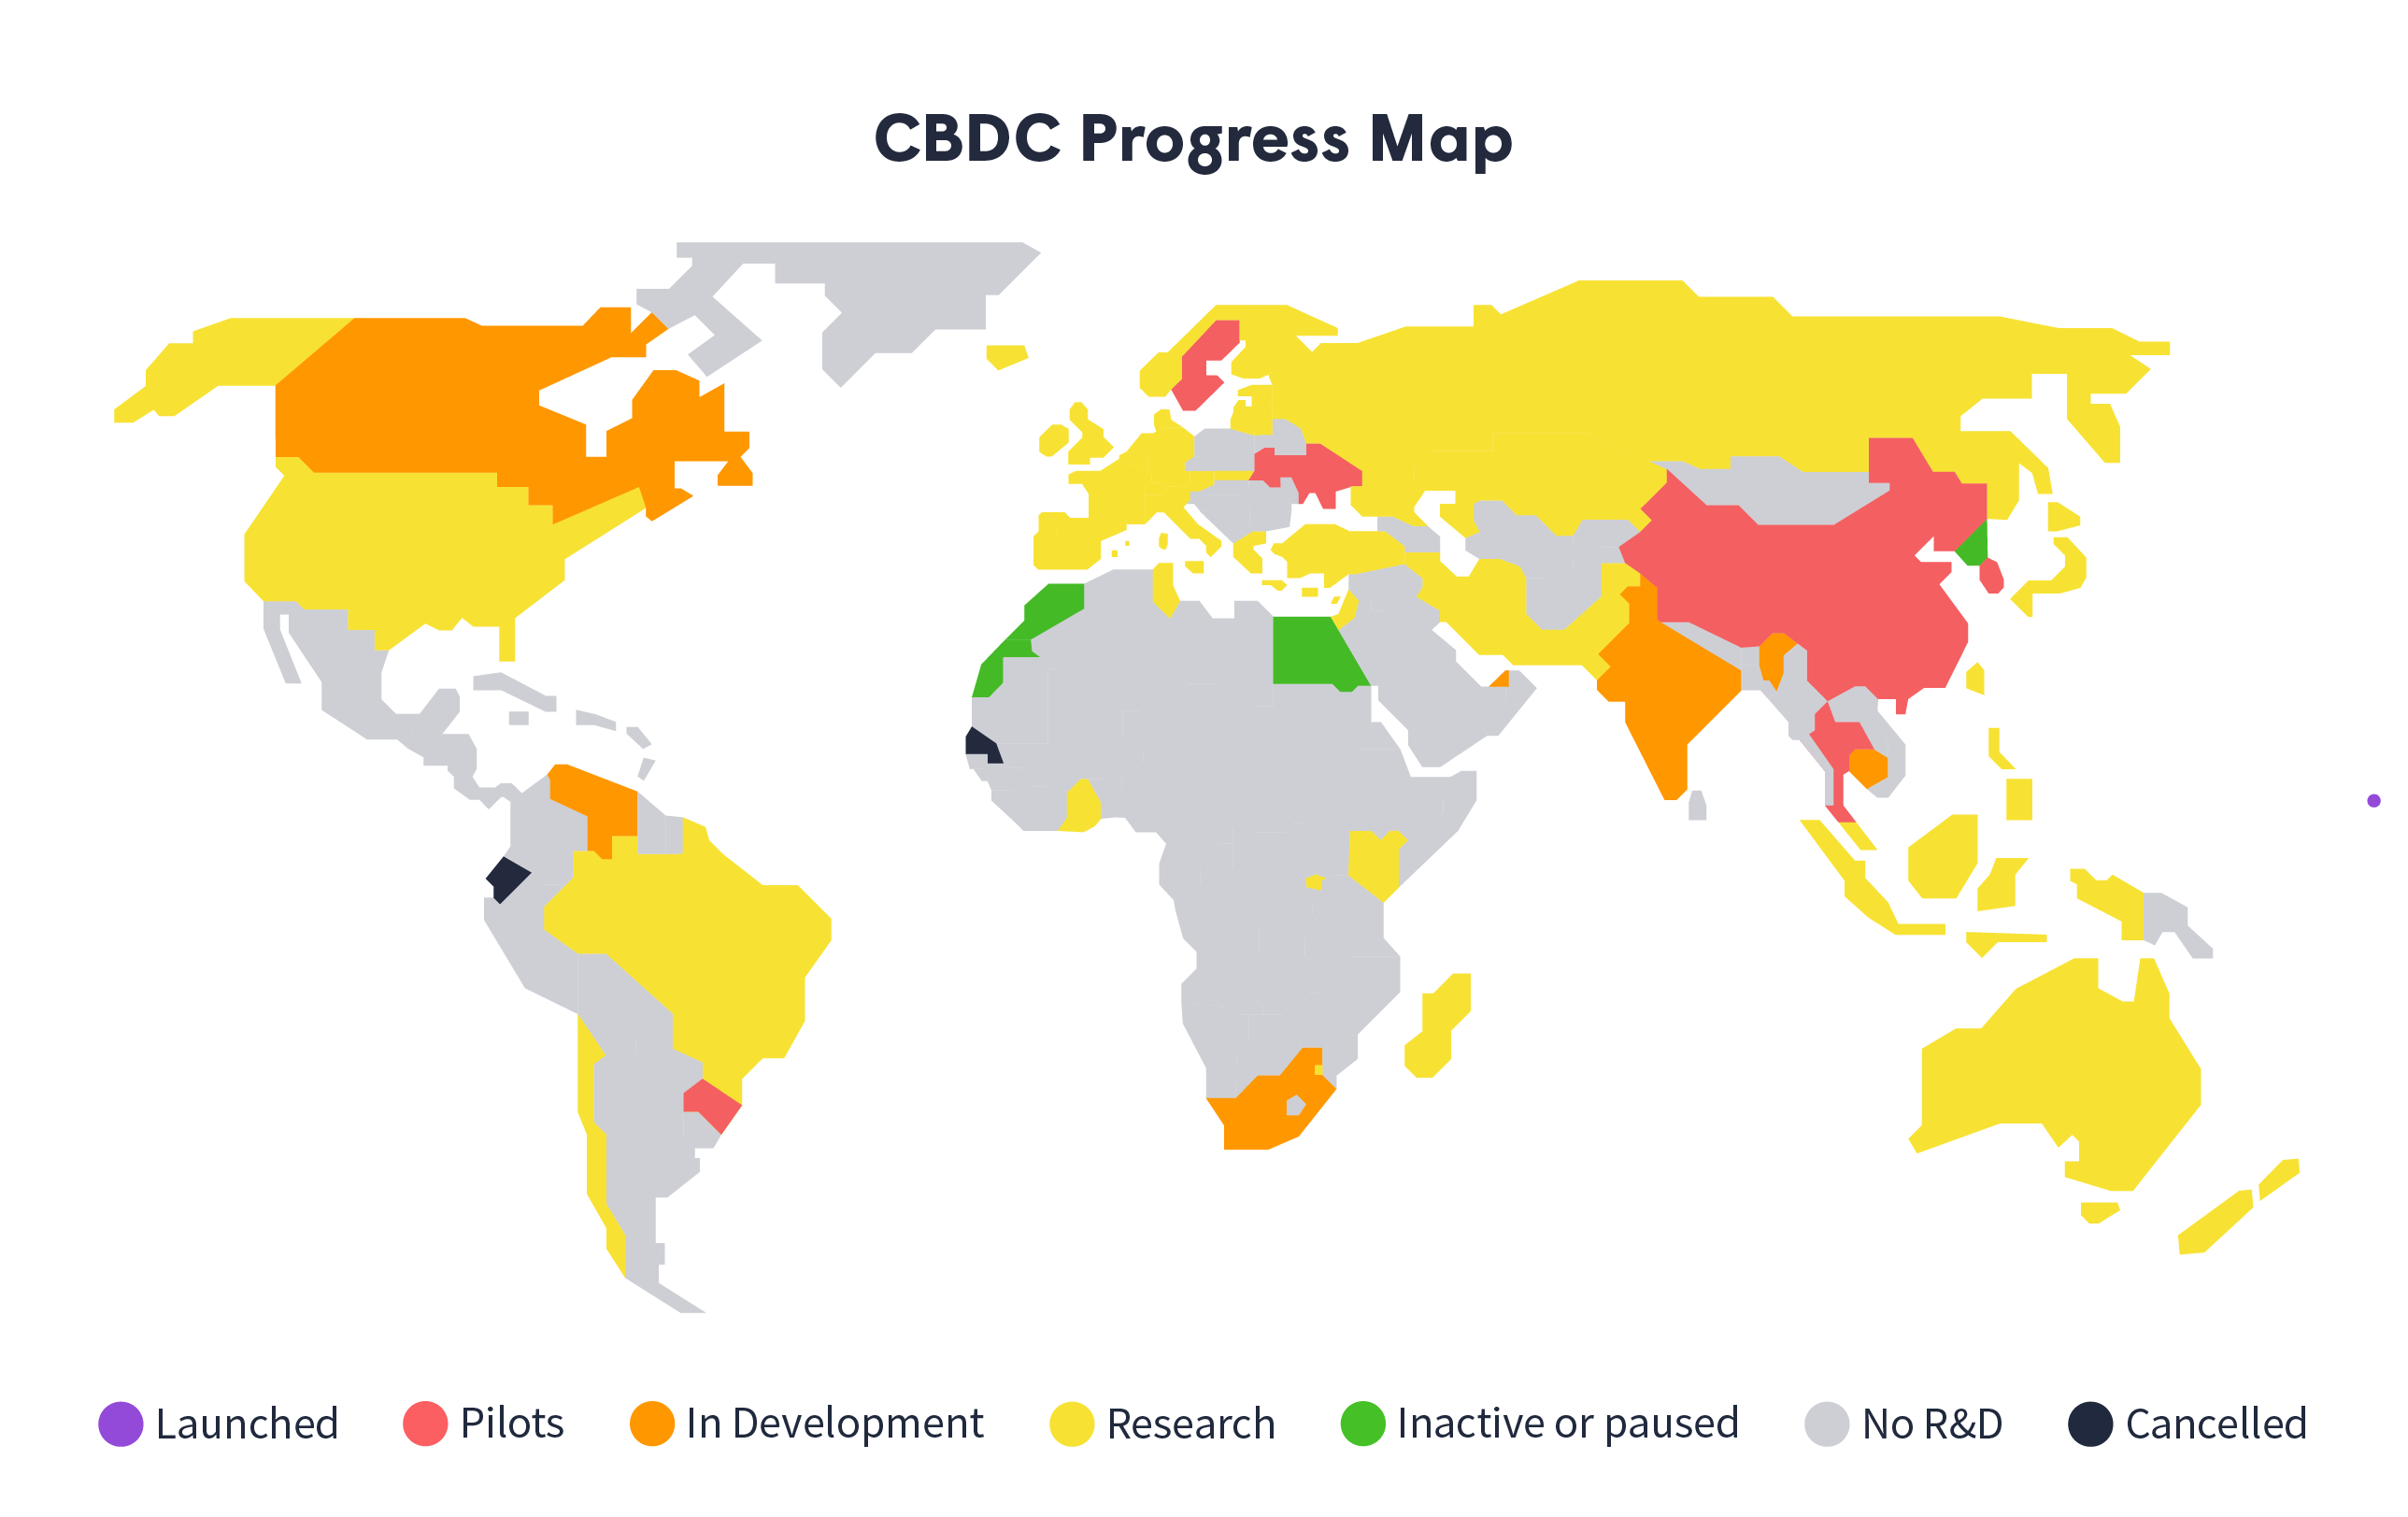 Map of the world showing how far various nations are in the development of their CBDC